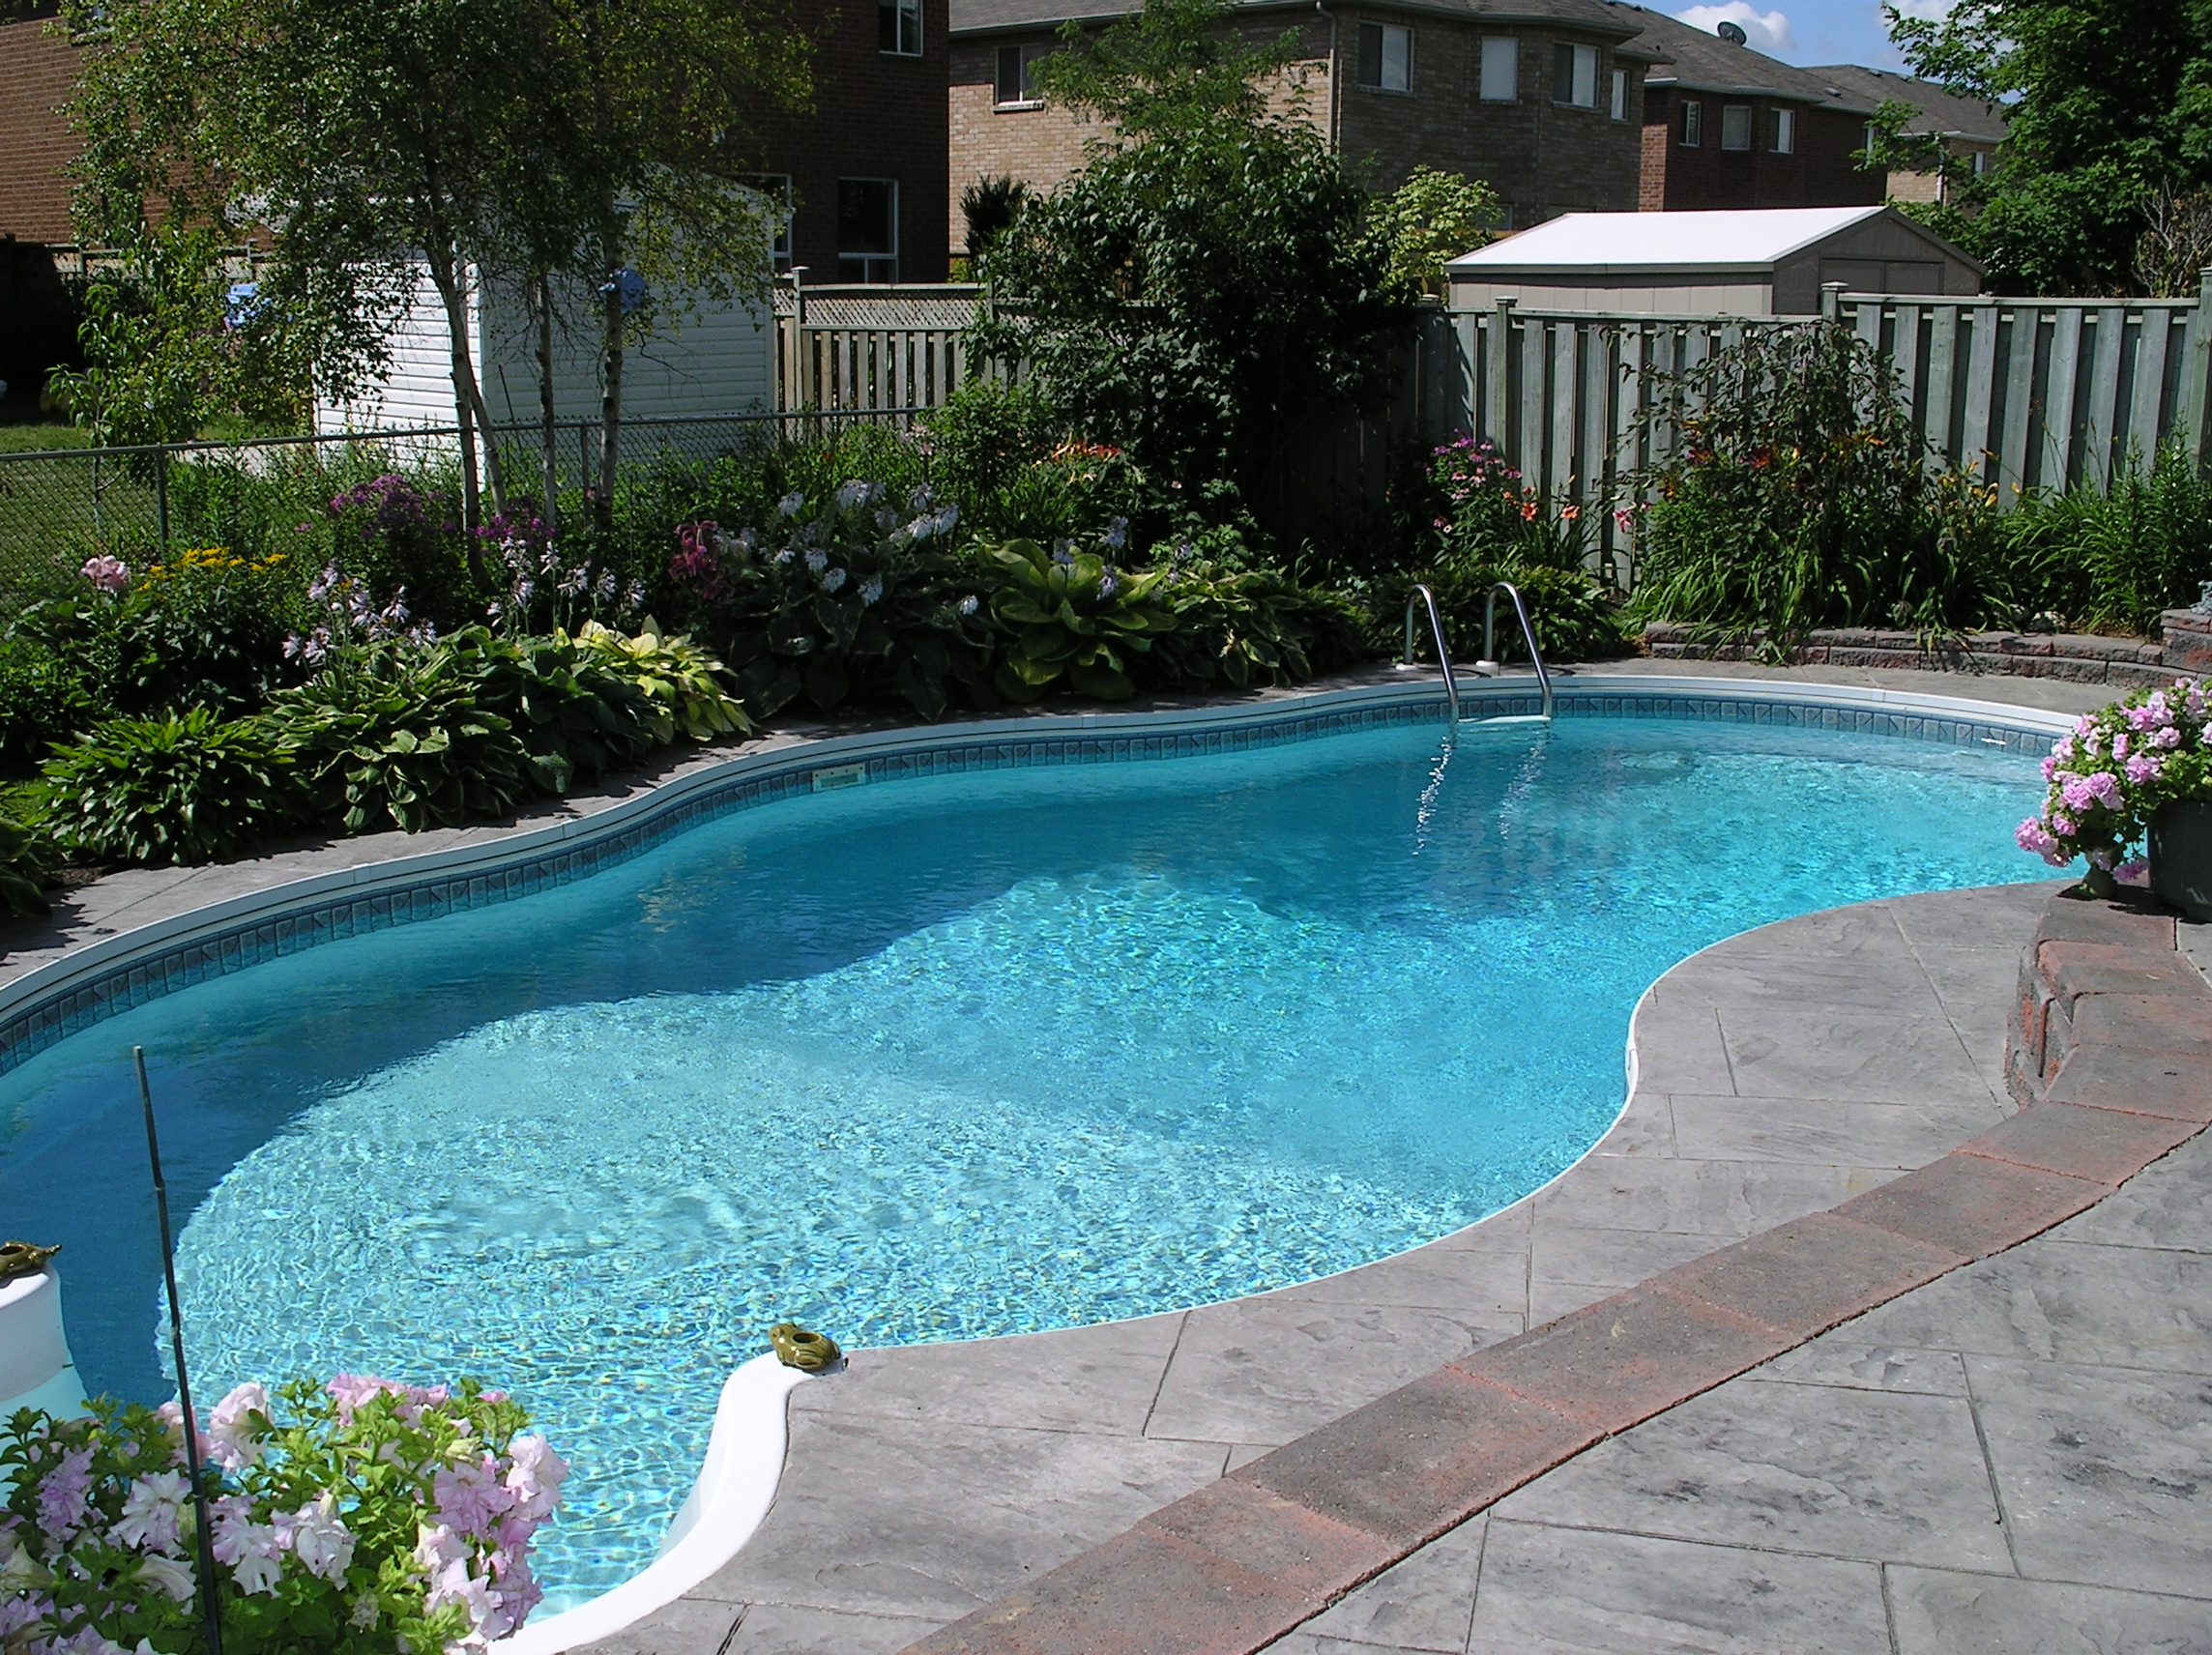 Backyard Pool Supply swimming pool - wikipedia